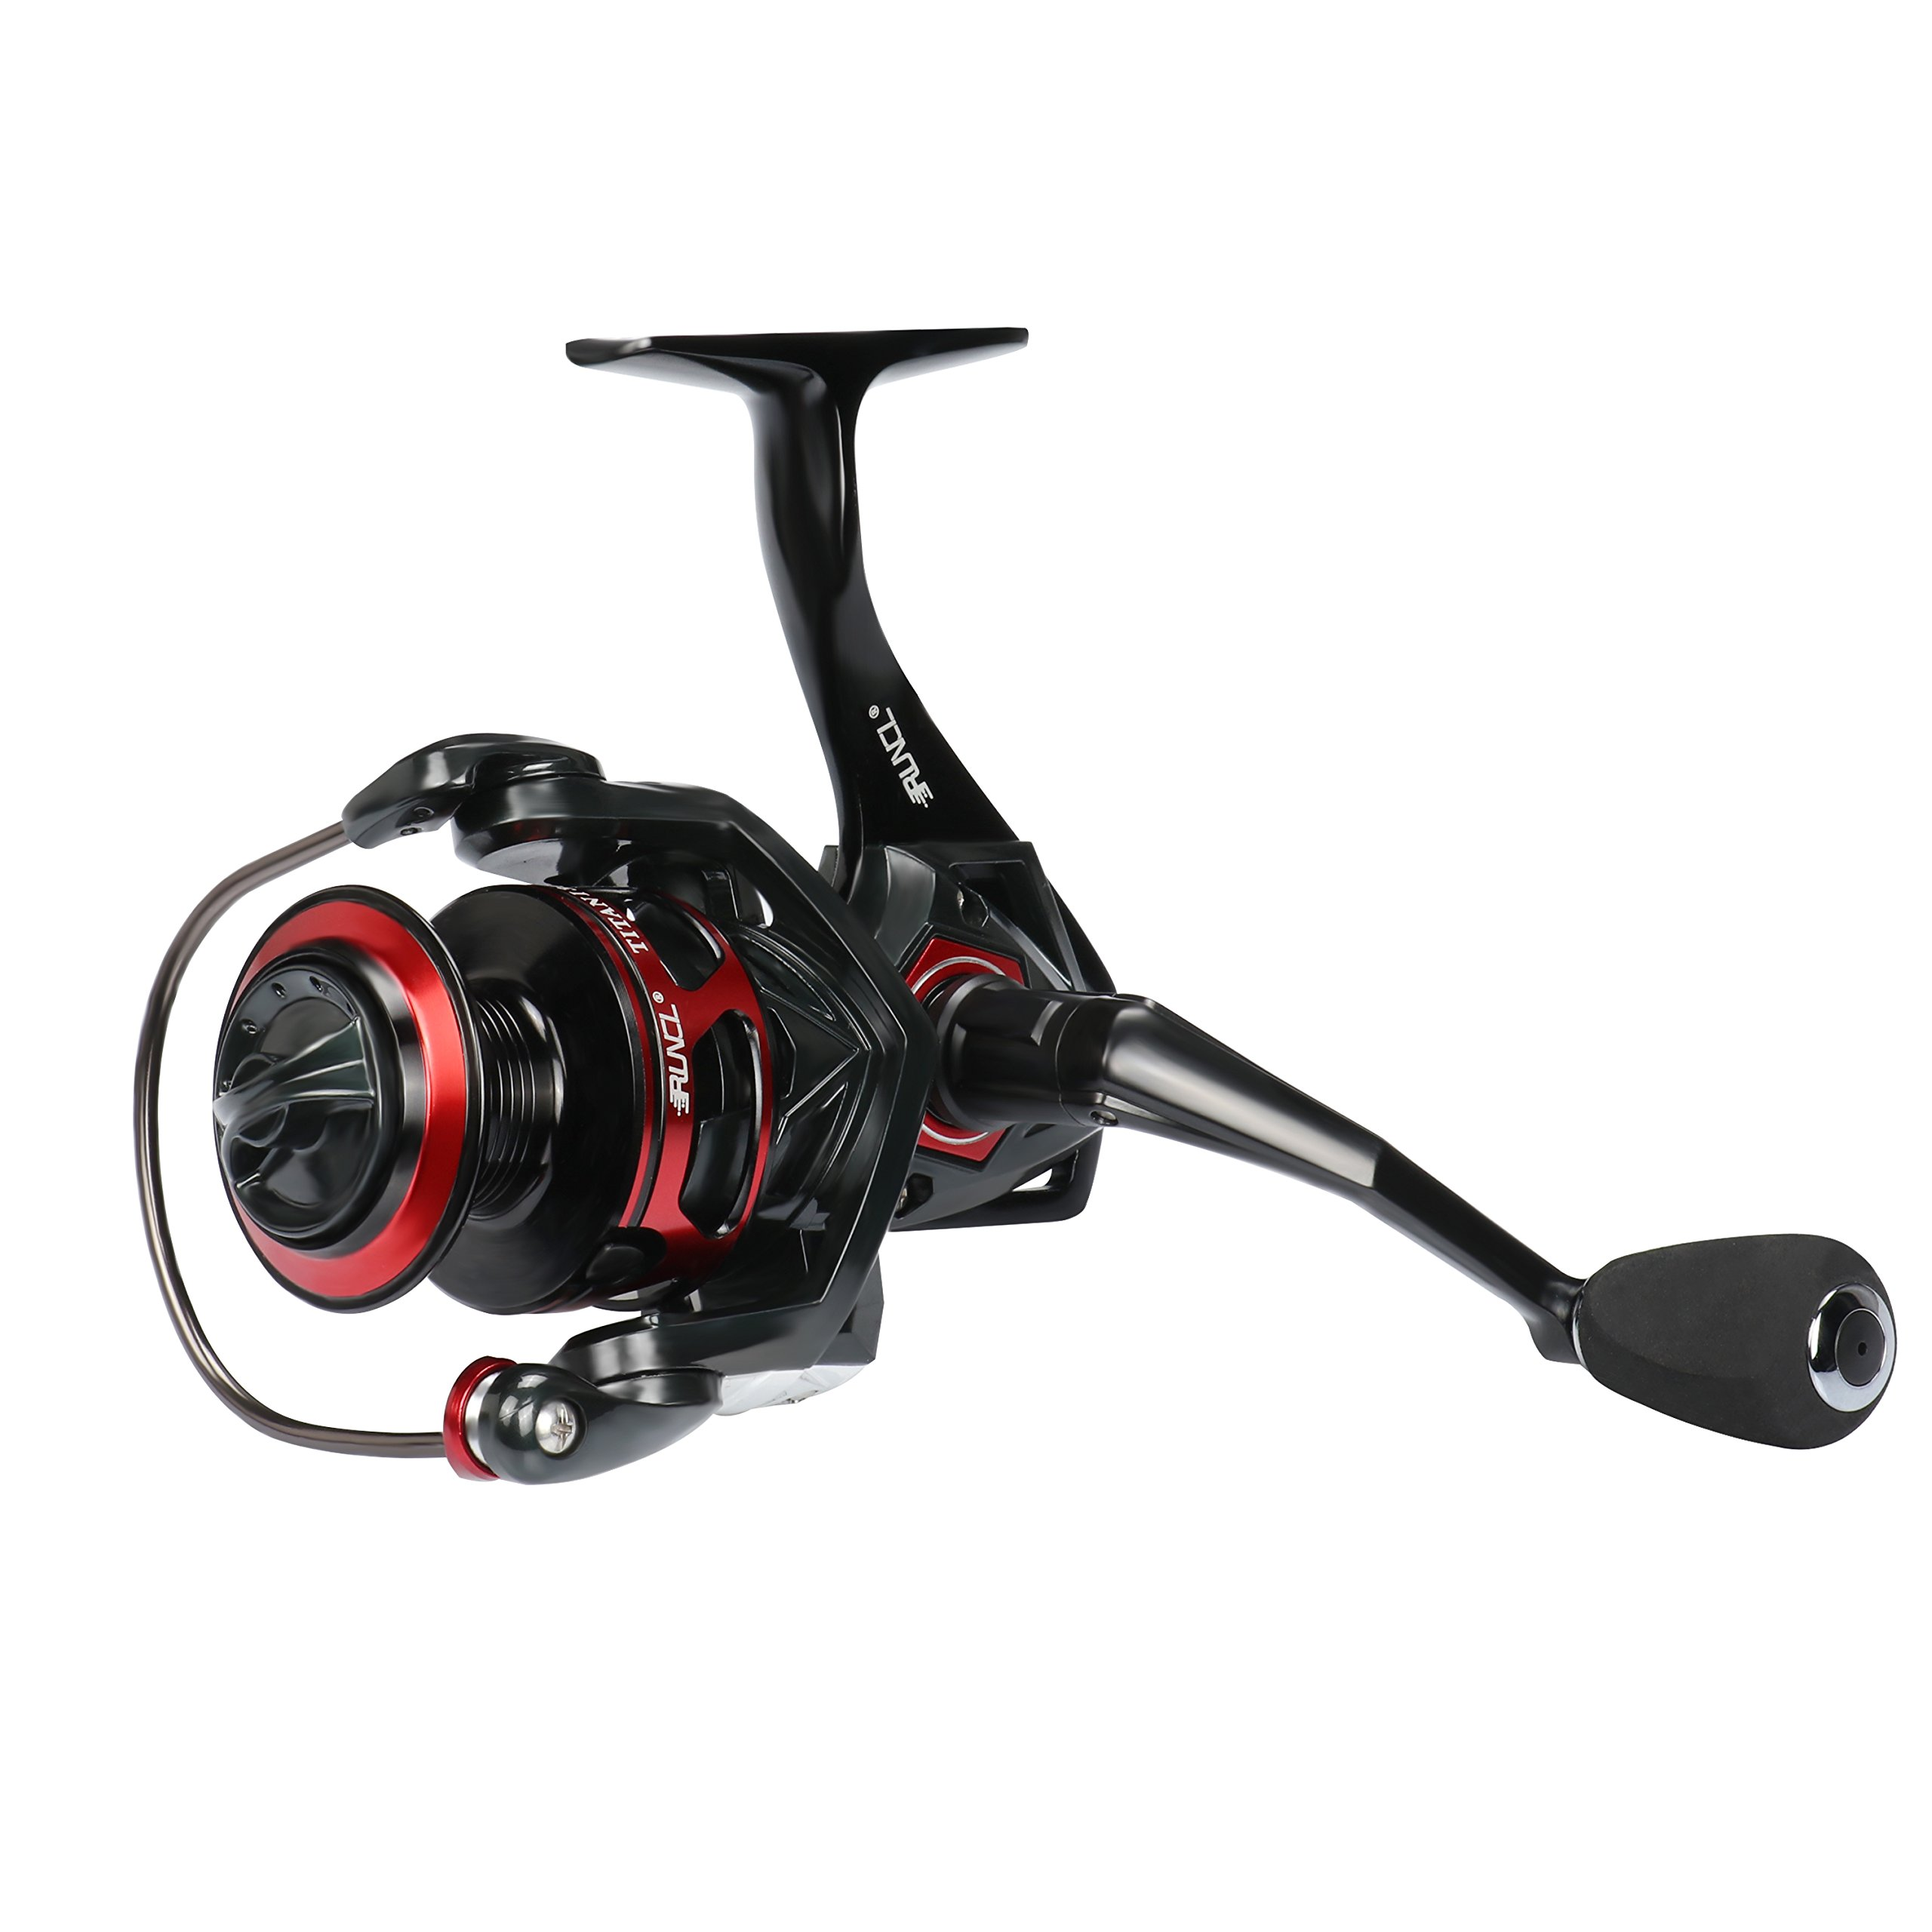 RUNCL Spinning Reel Titan I, Fishing Reel with Full Metal Body, Max Drag 44LB, 5 Carbon Fiber Drag Washers, 9+1 Stainless Steel Shielded Bearings, Hollow Out Rotor for Saltwater and Freshwater (5000) by RUNCL (Image #7)